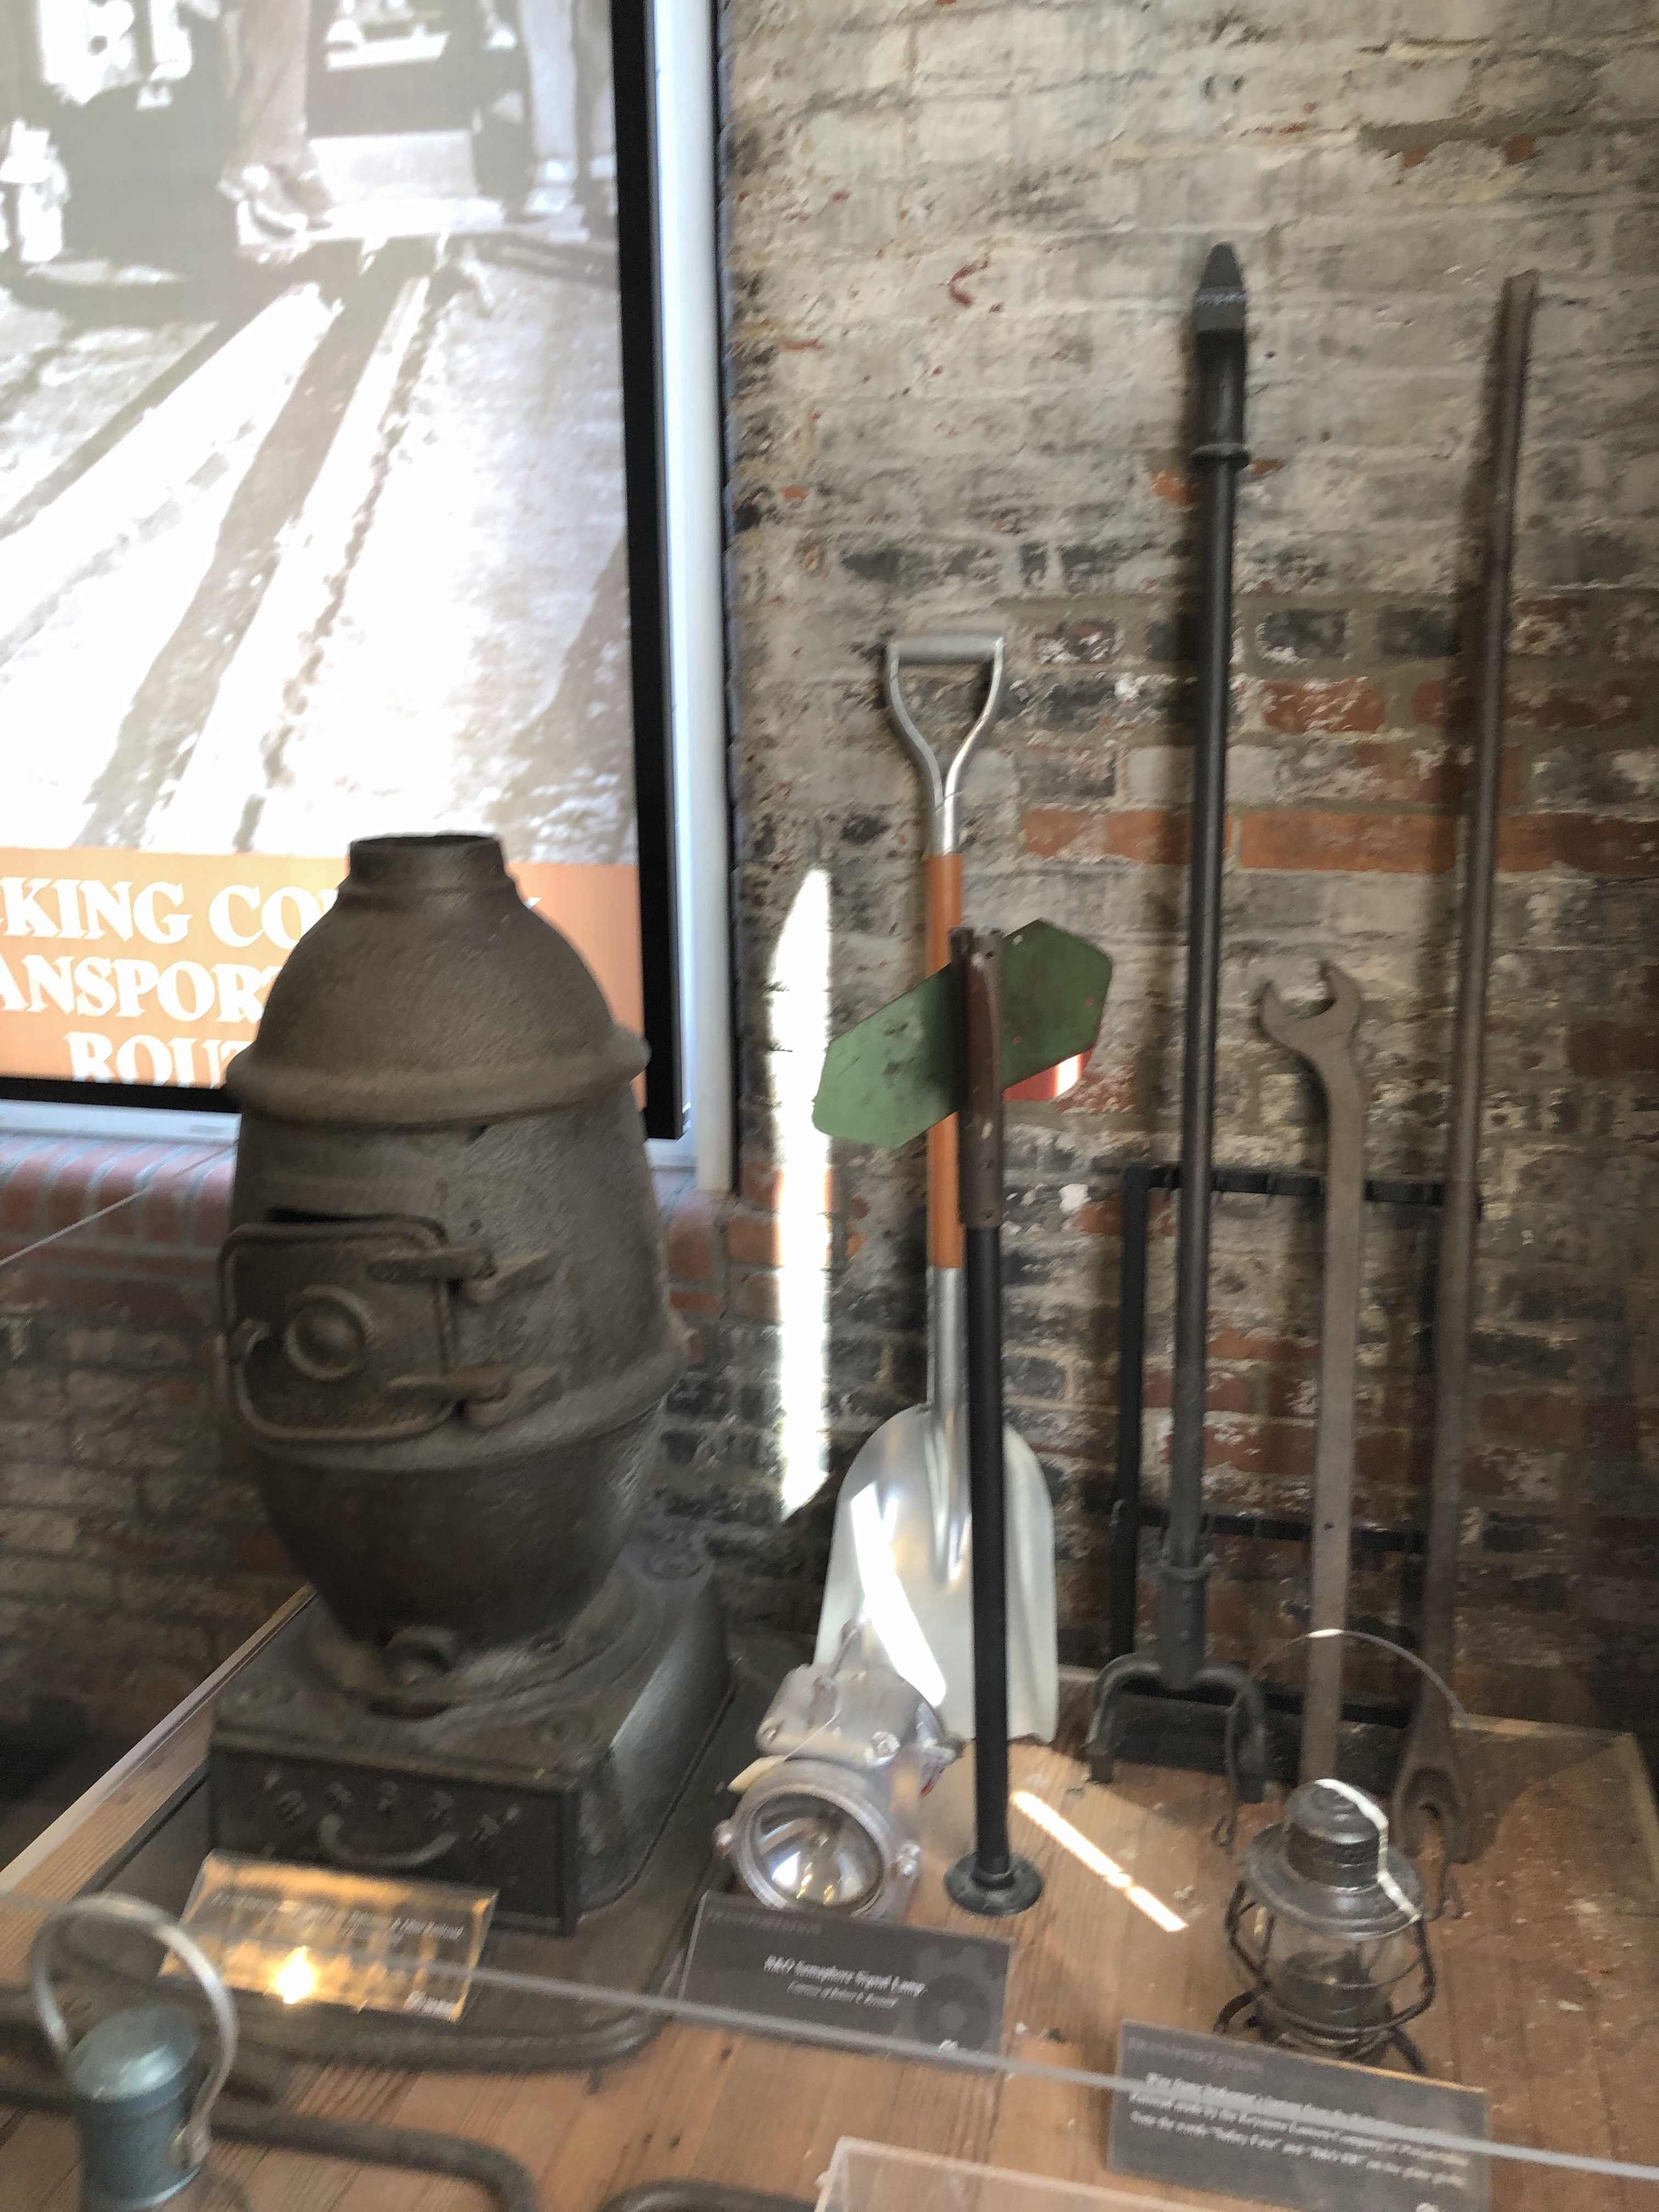 Several tools used by the B&O, including a wood burning stove, tools for repairing rails, and a brakeman's lantern.